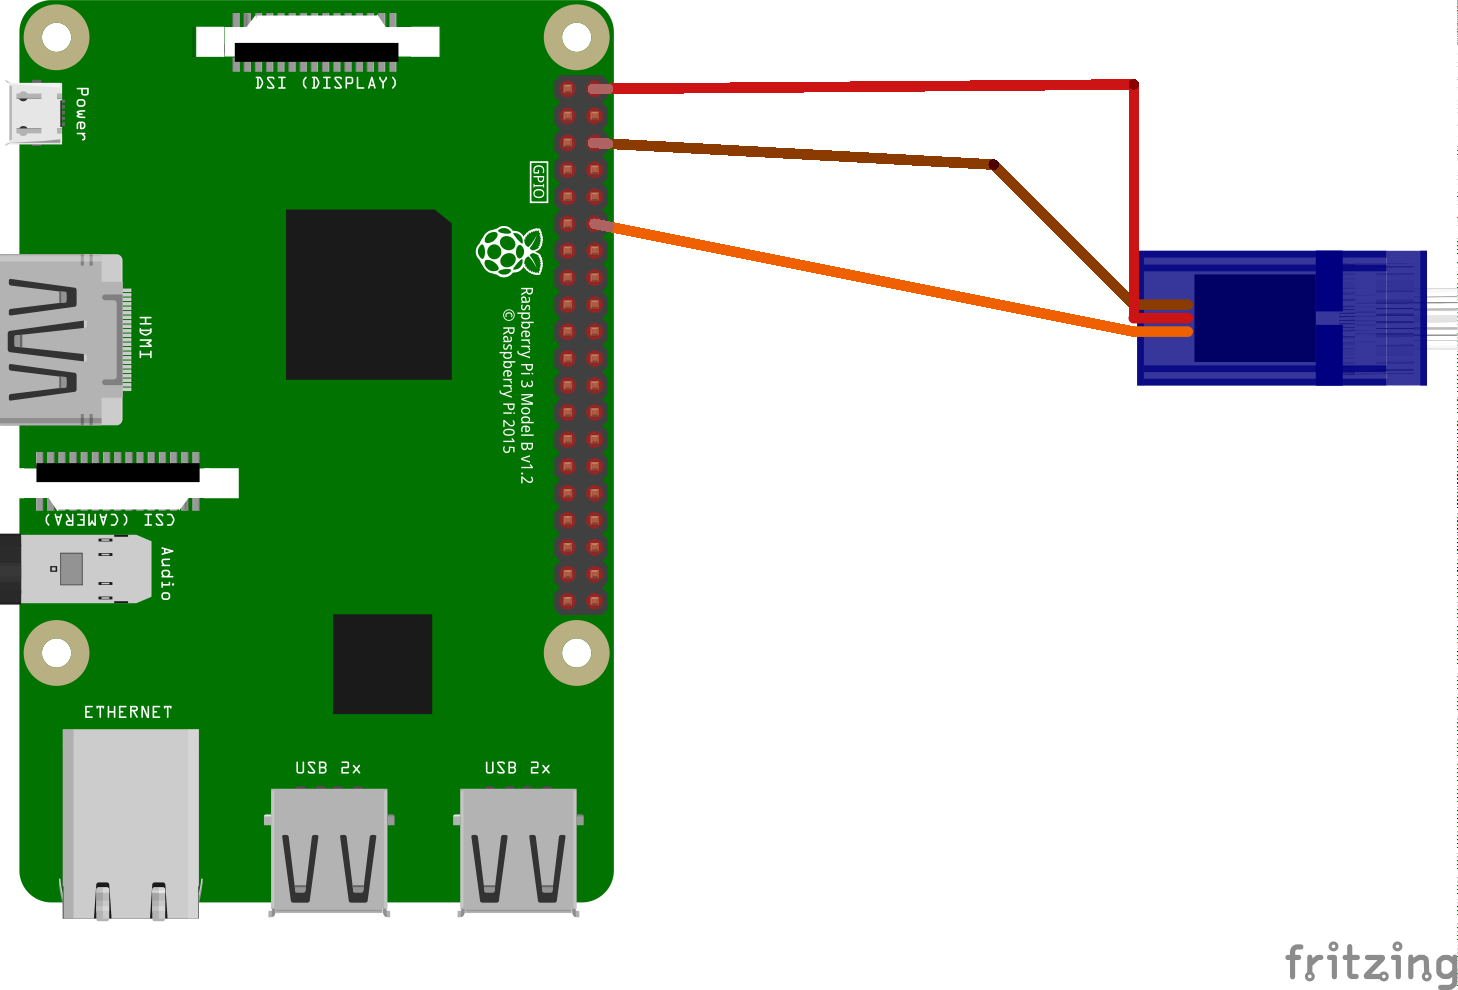 Pi3 connected to servo